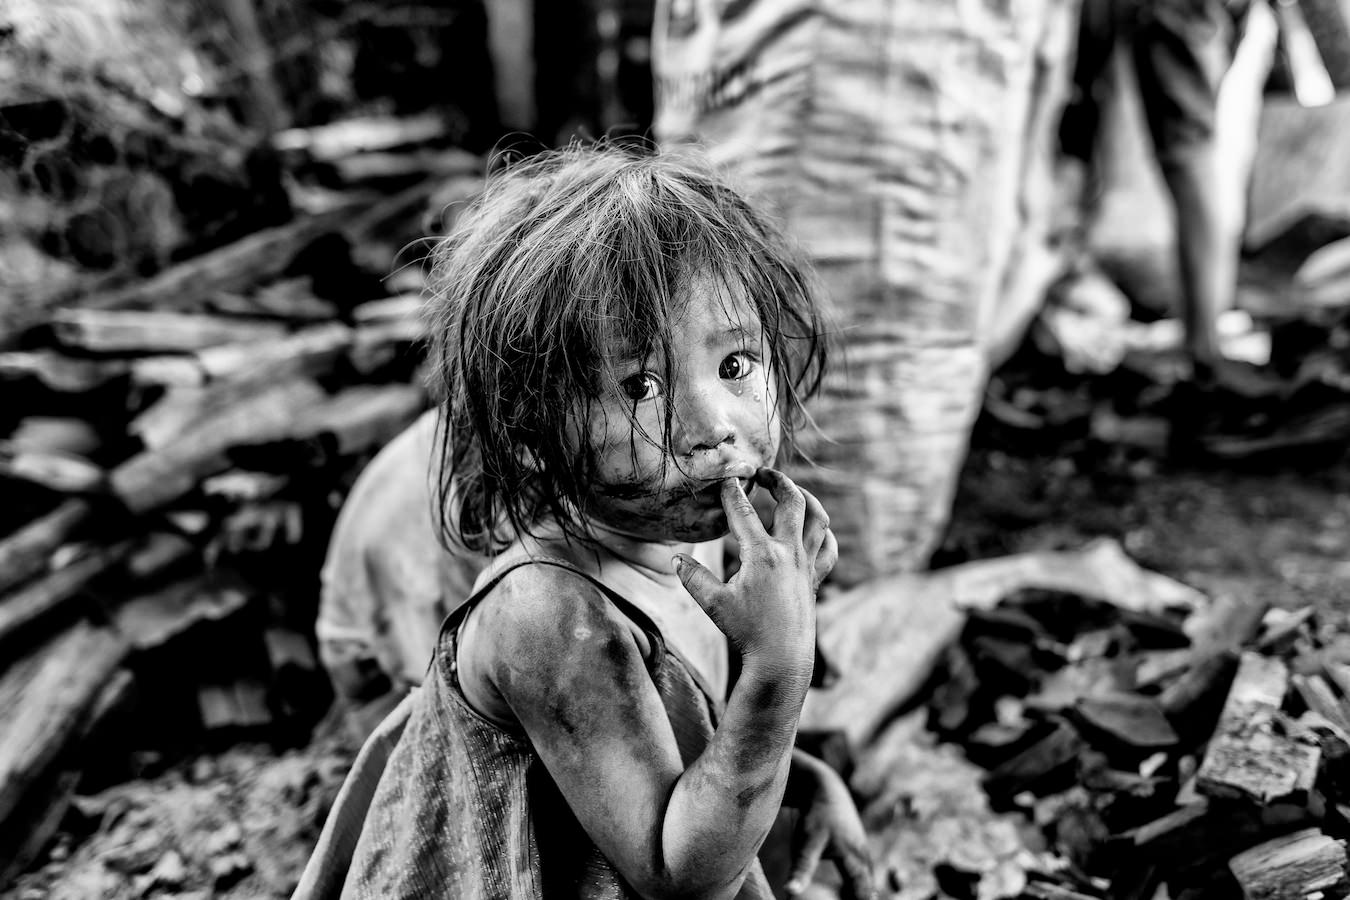 A small girl her face covered with black soot  watches her mother pack charcoal in one of Manila's charcoal producing slums, Manila, Philippines, 25 December, 2017.  Despite being banned in many districts, illegal charcoal harvesting continues secretly within many of Manila's outer suburban slums. Just a few kilometres from Manila's city centre the poorest of the slum families' risk their lives to make just a few pesos in the illegal charcoal making business in appalling conditions. © Ted McDonnell